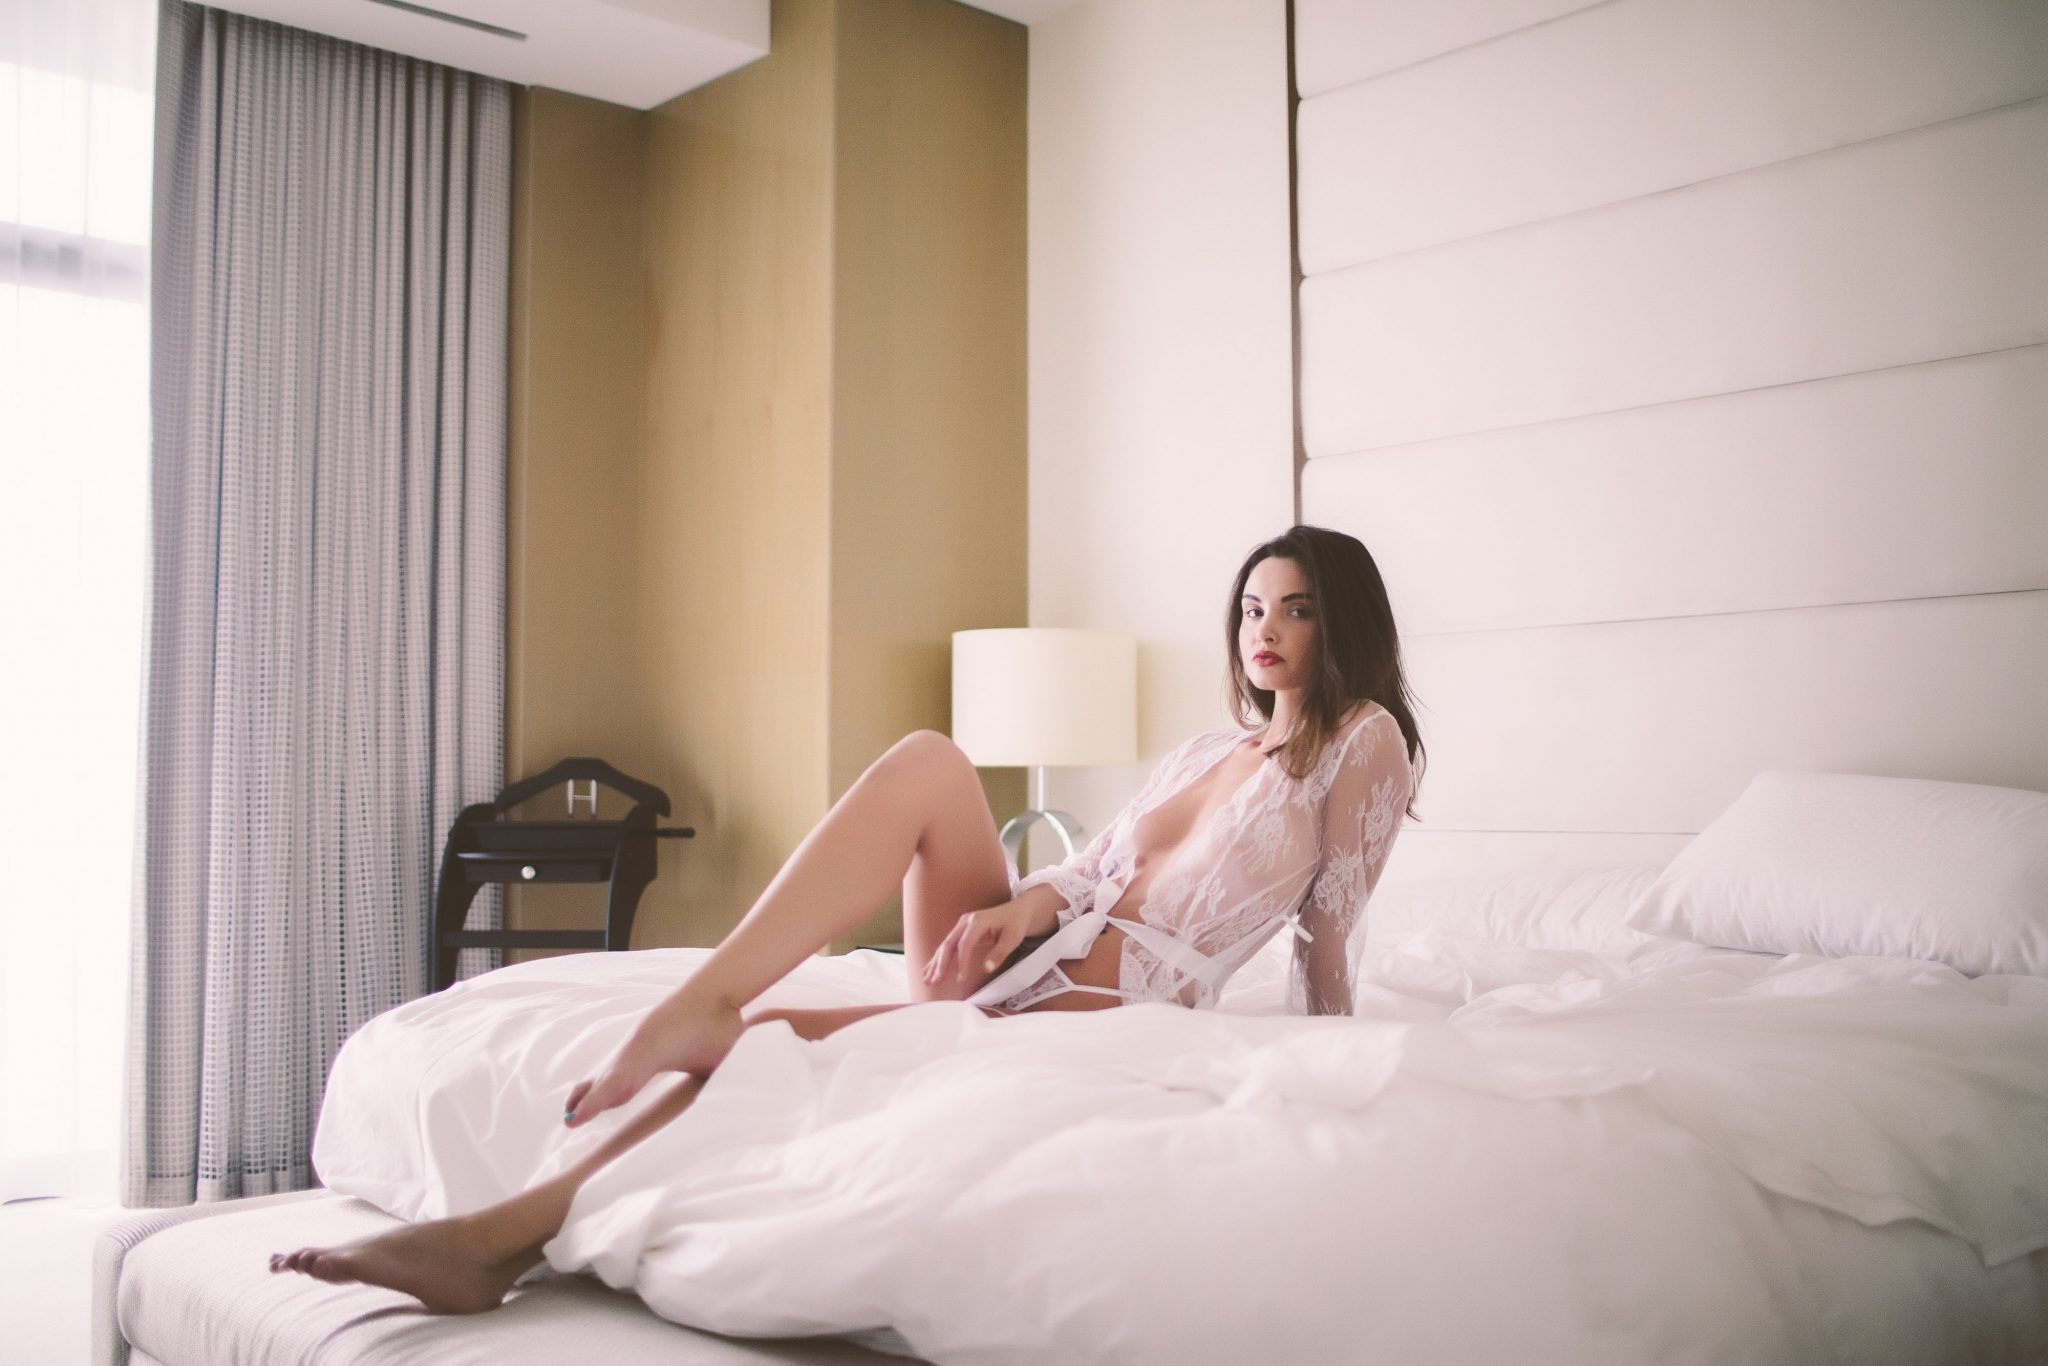 A woman posing in a NYC hotel for a boudoir photo shoot